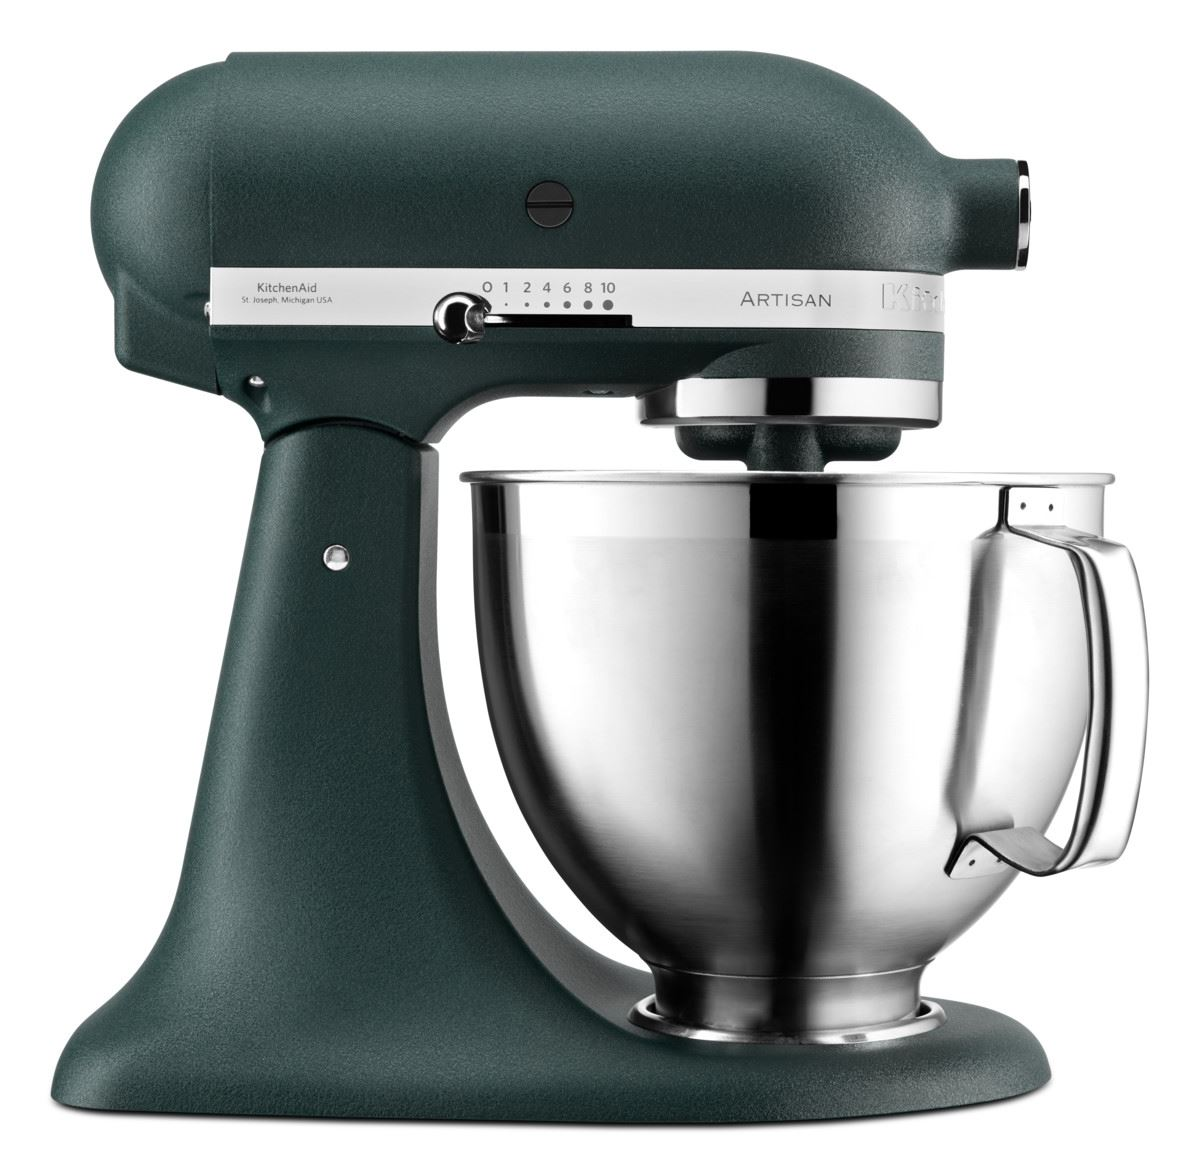 KitchenAid Küchenmaschine KSM185 - Pebbled Palm